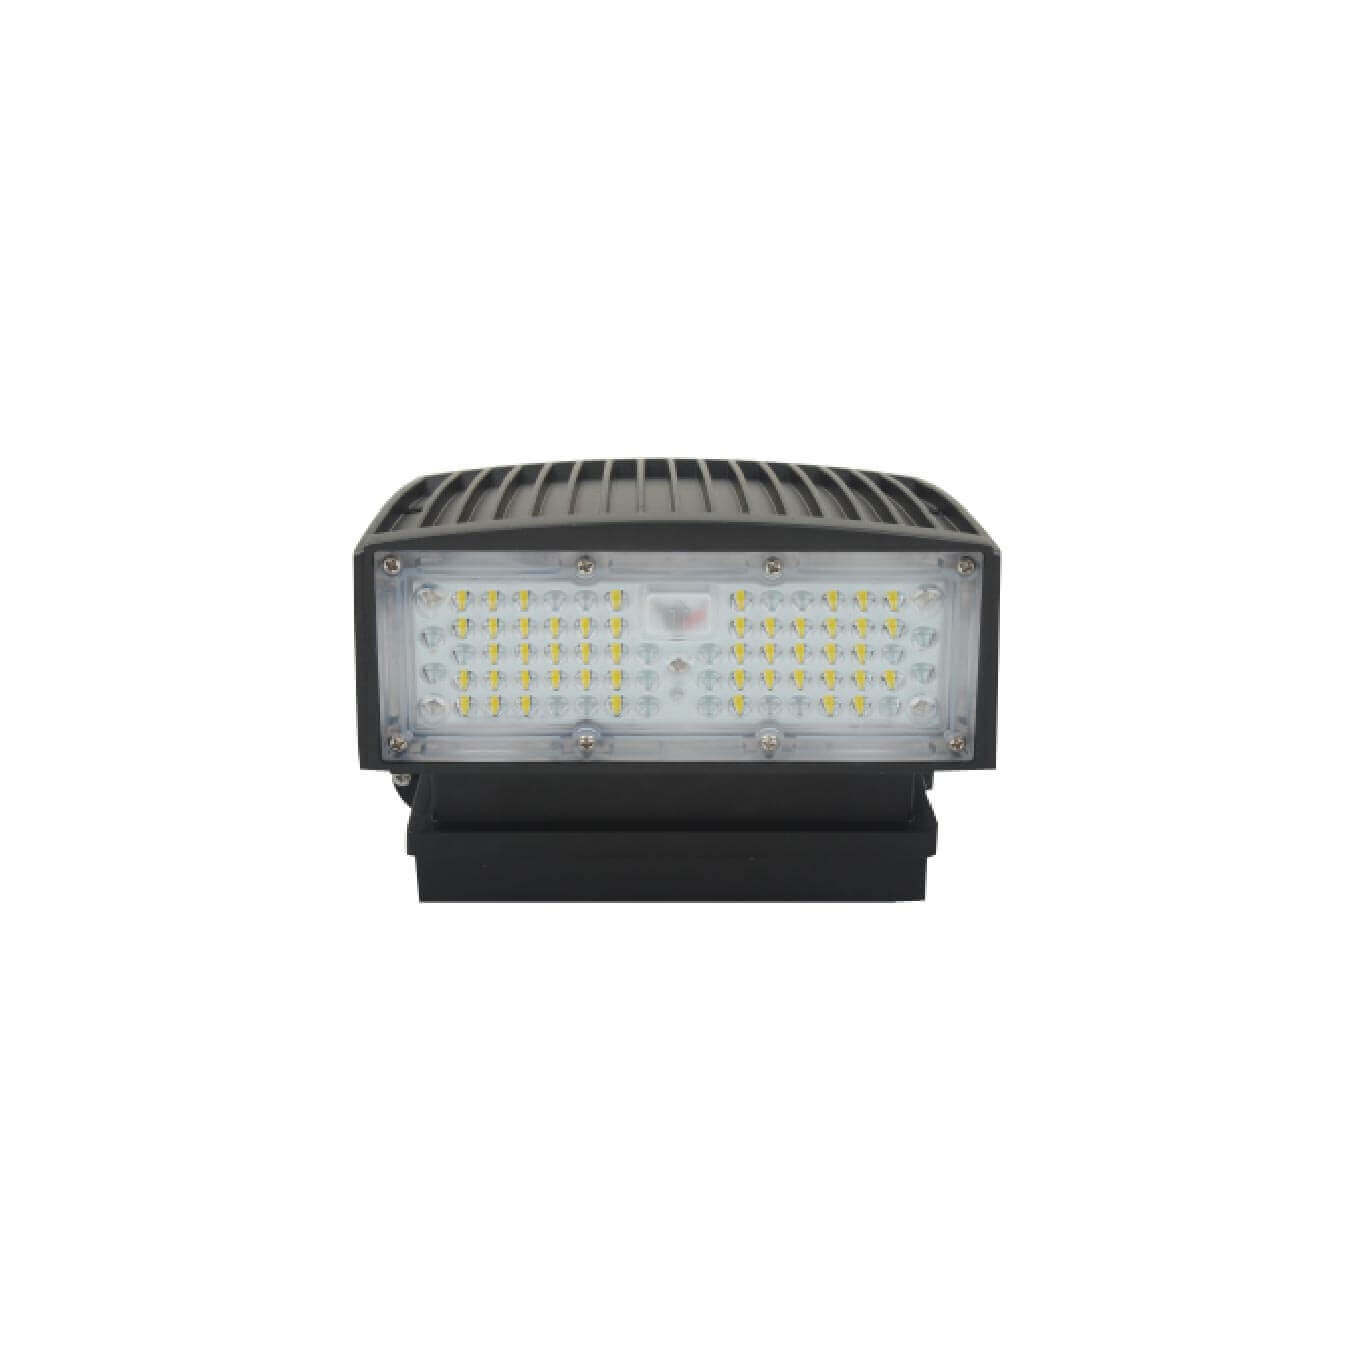 Wall Pack 55w 5000k 6500 Lumens Ledmyplace